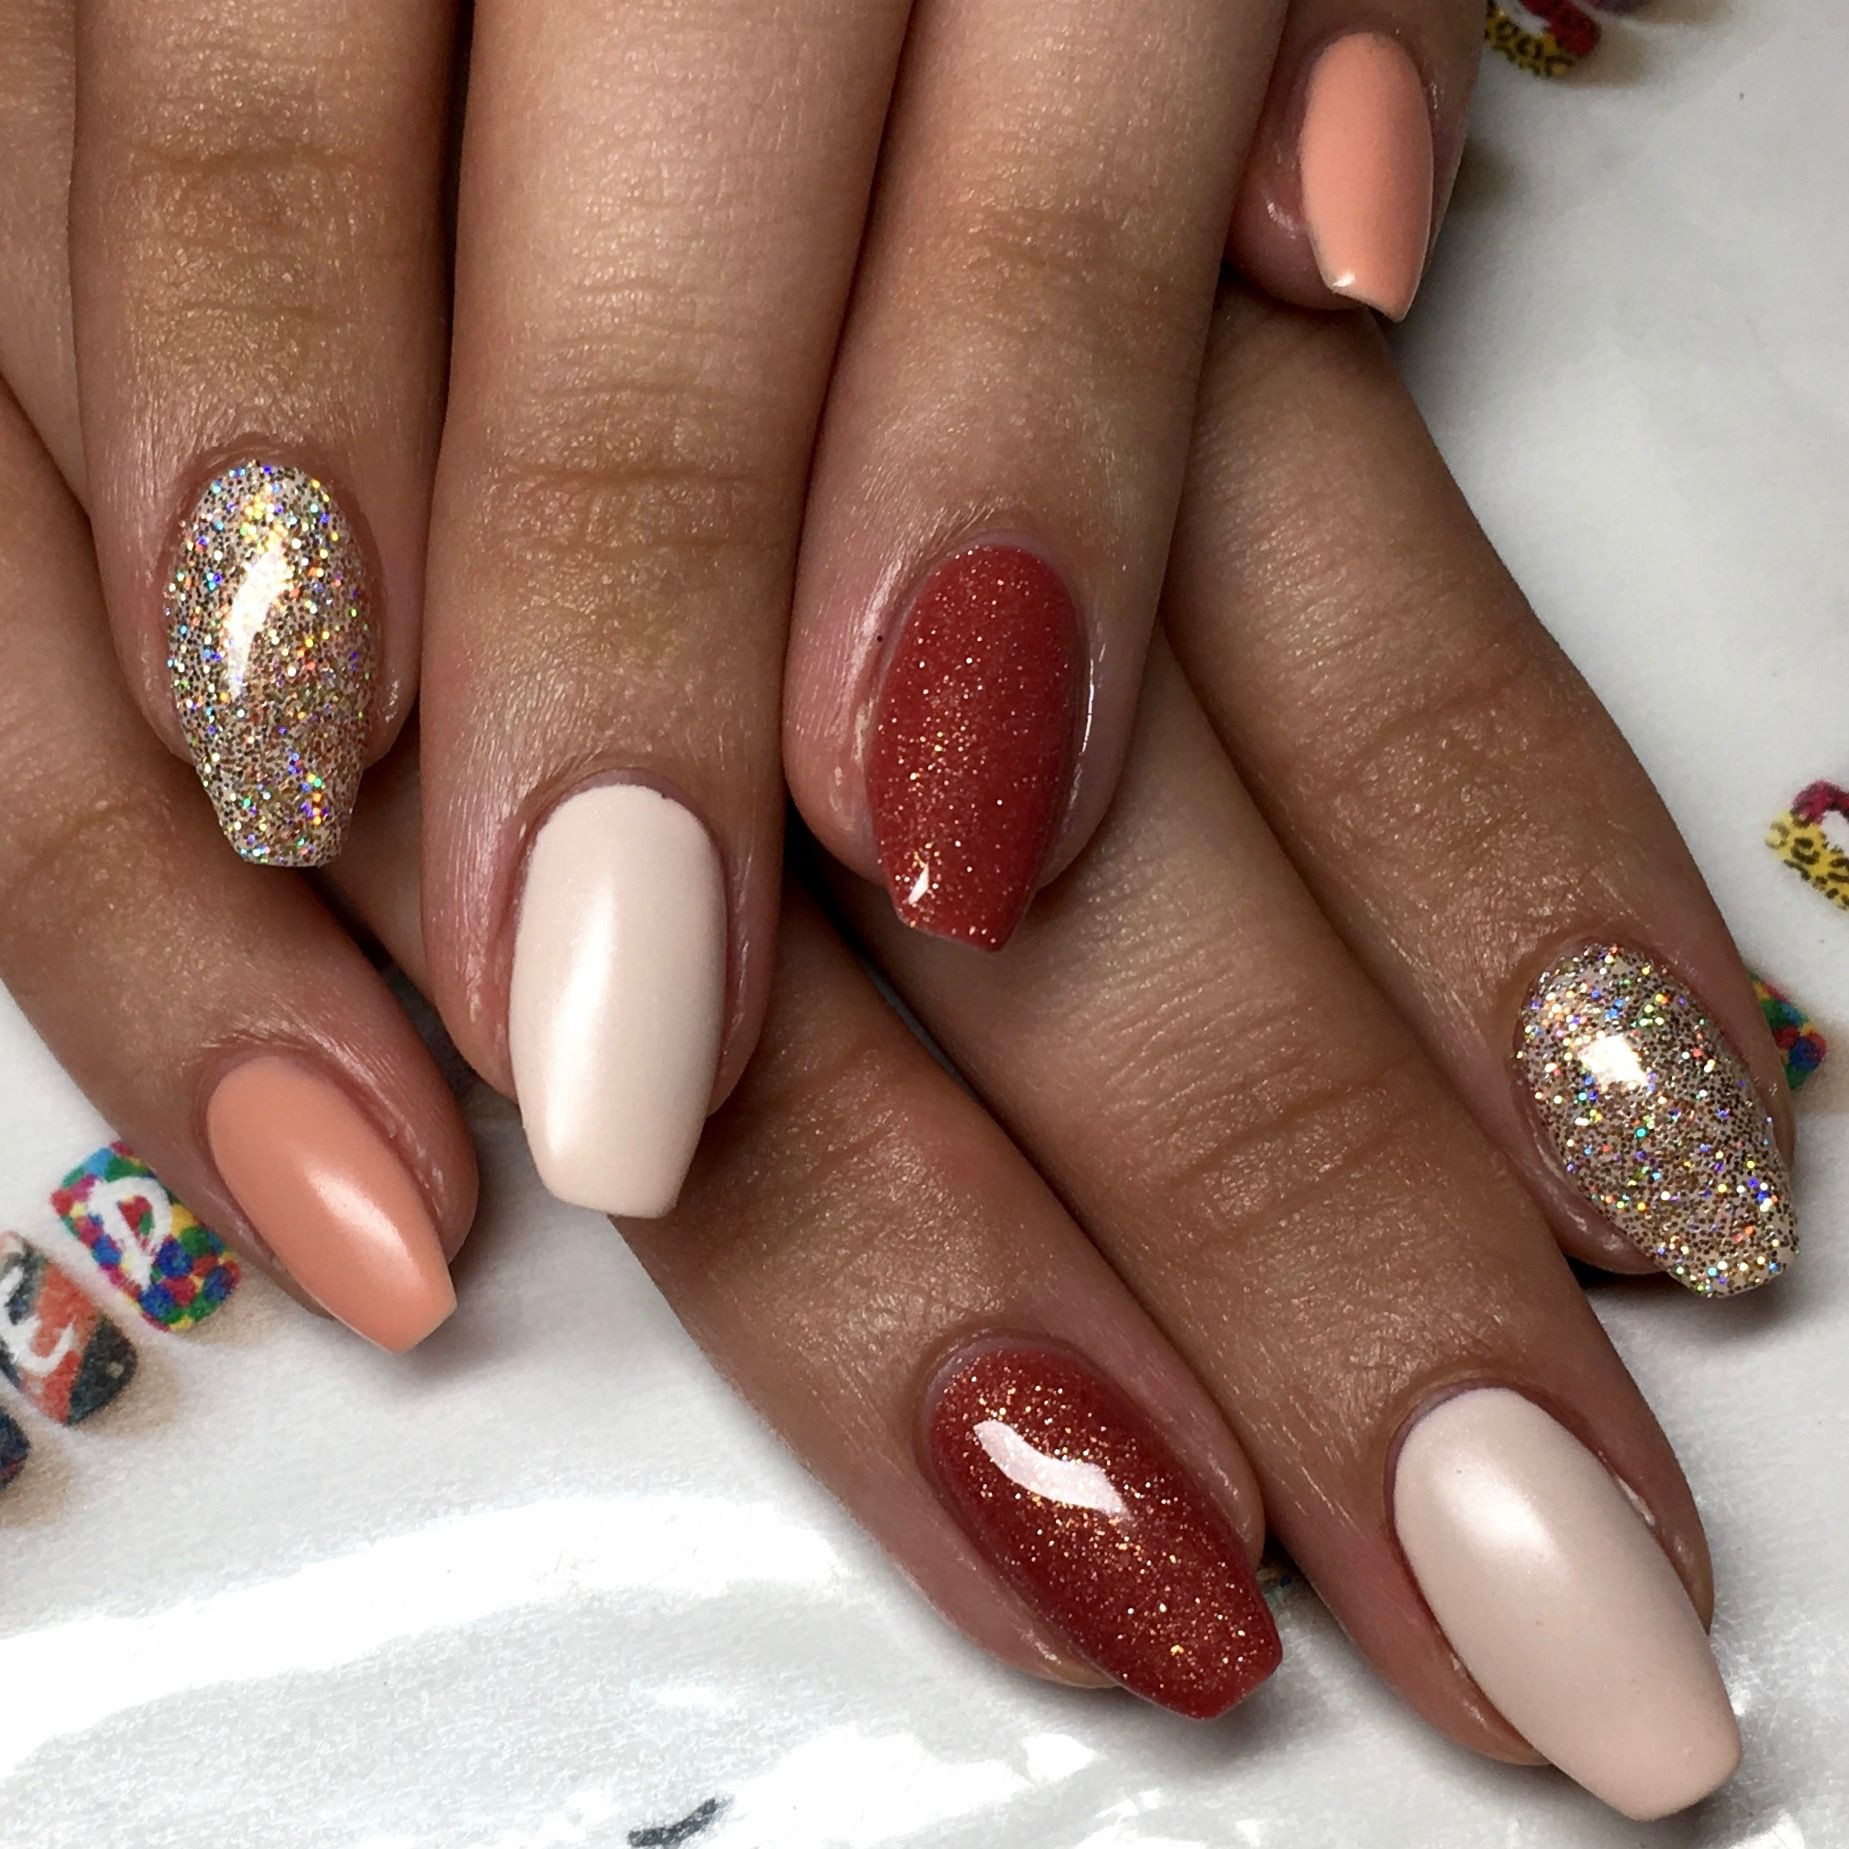 Natural Glitter Nails  natural gel polish coffin nails with magpie glitter